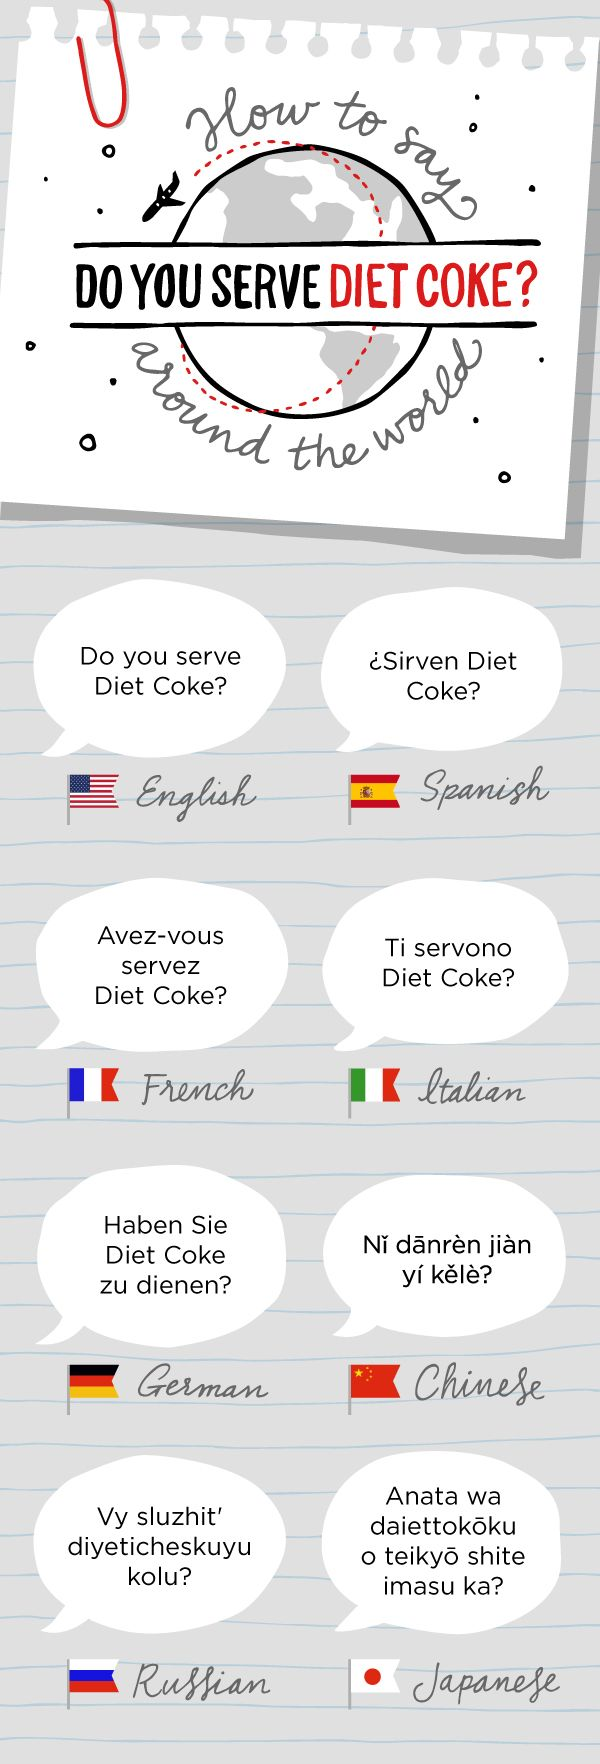 Love to travel? Thanks to our handy guide, you can enjoy Diet Coke all around the world.